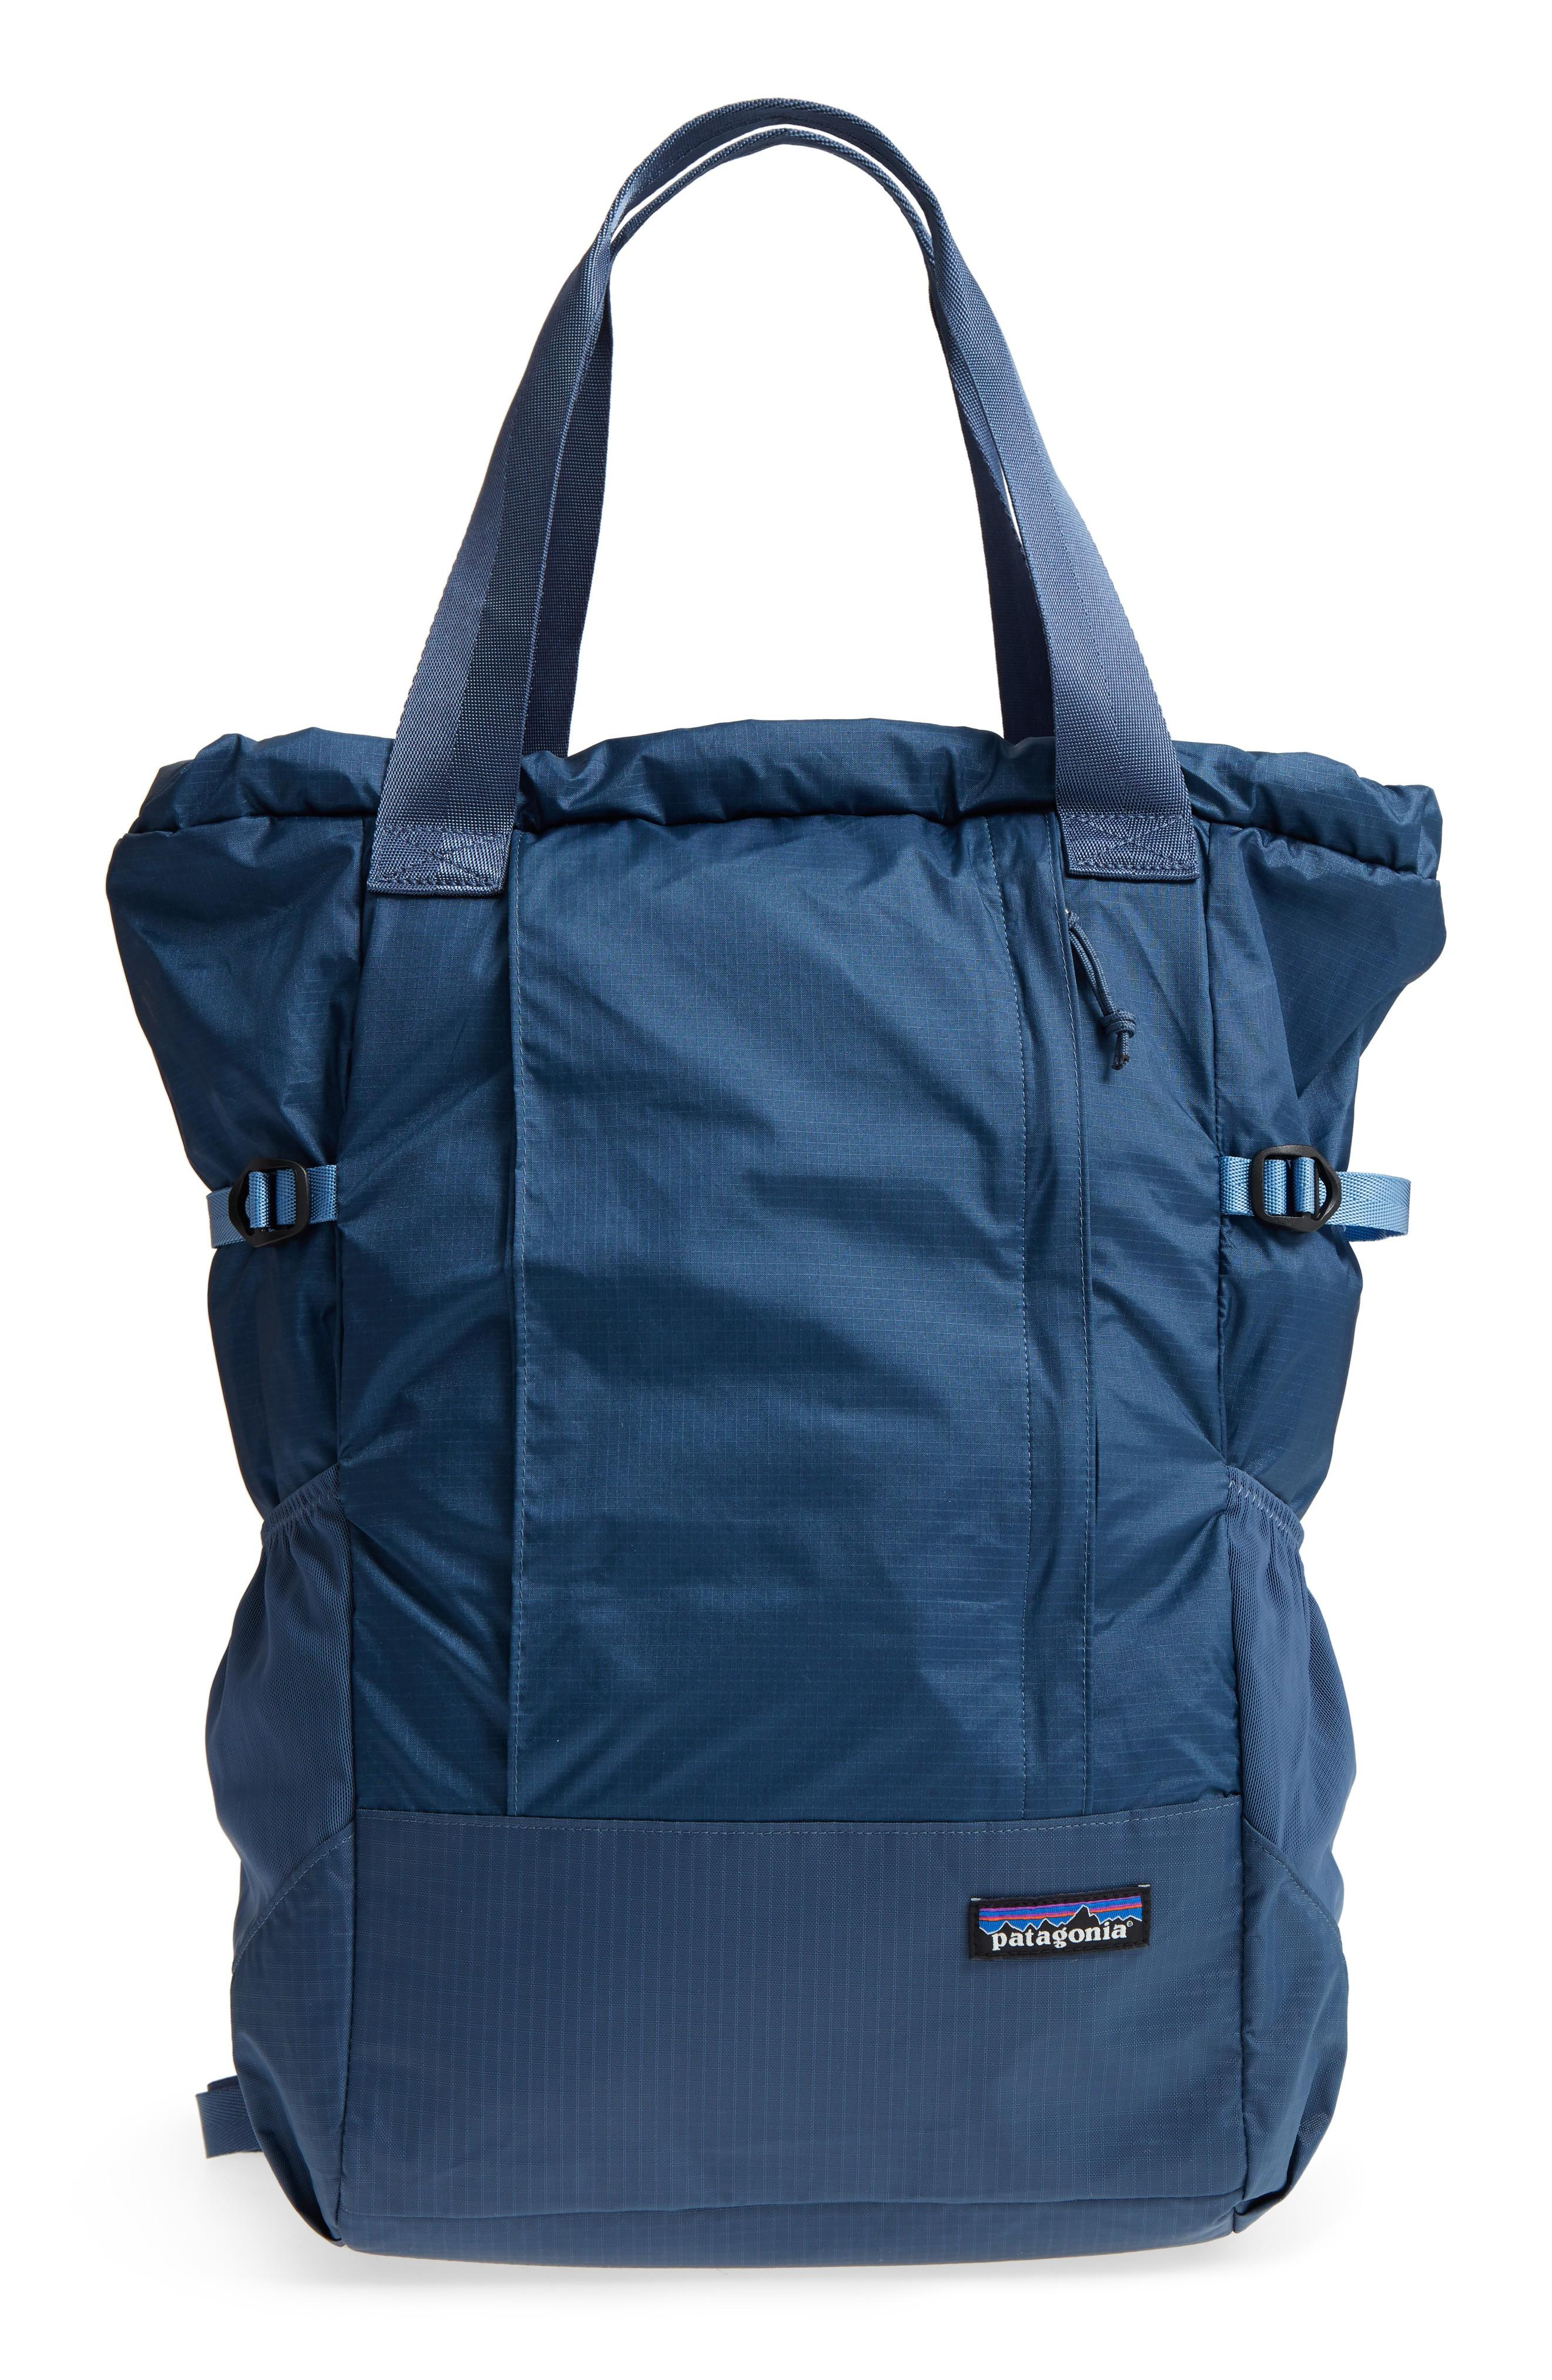 Patagonia Lightweight Travel Tote Pack - Blue In Dolomite Blue